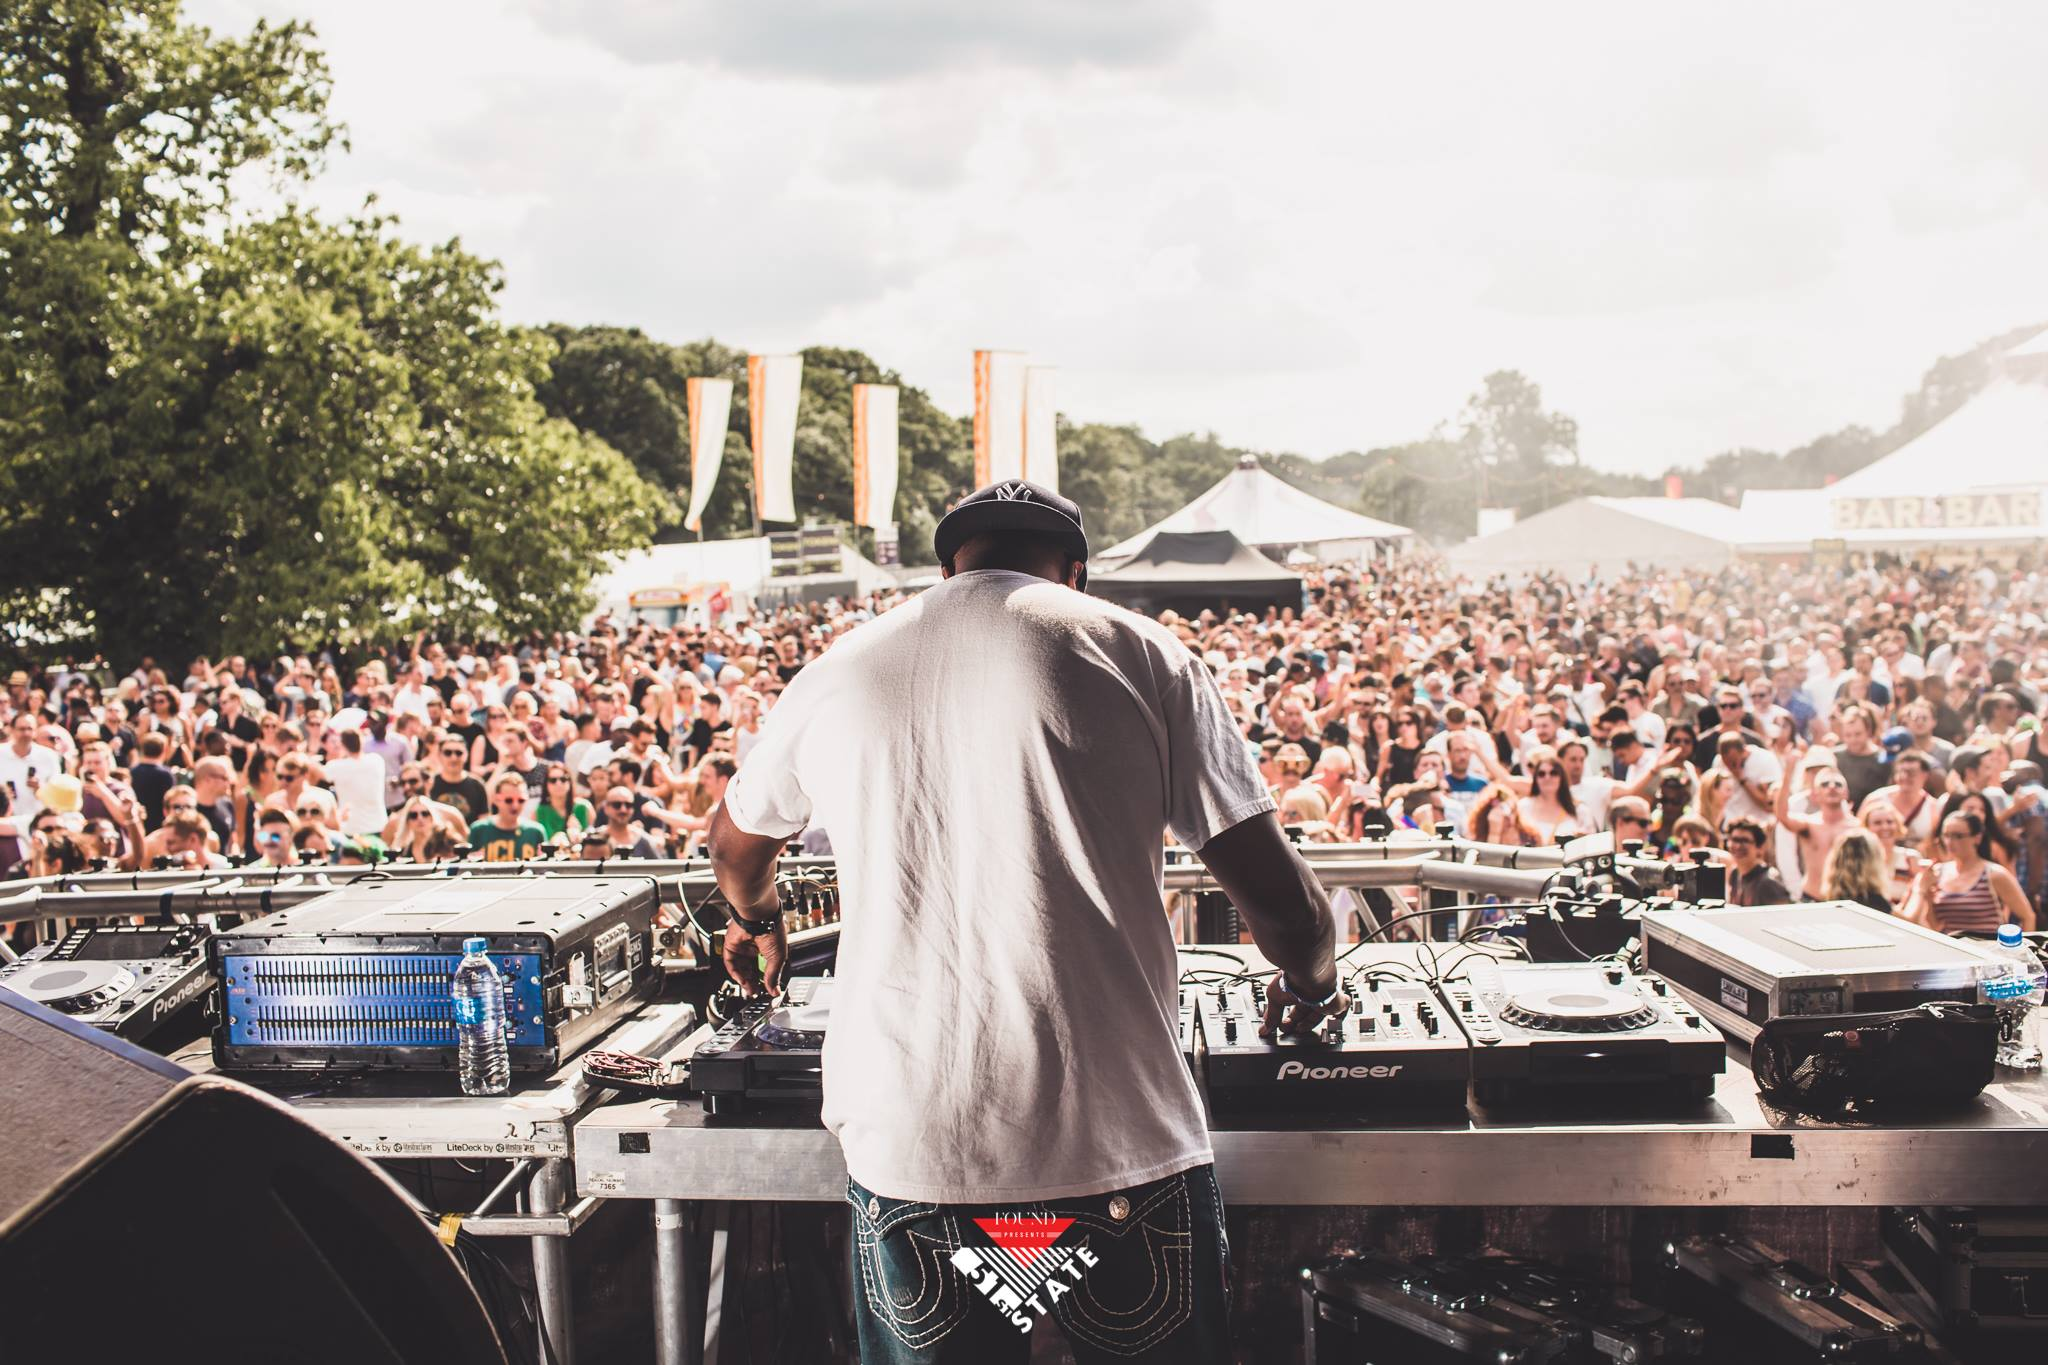 51st State Festival 2015 | Highlights 1